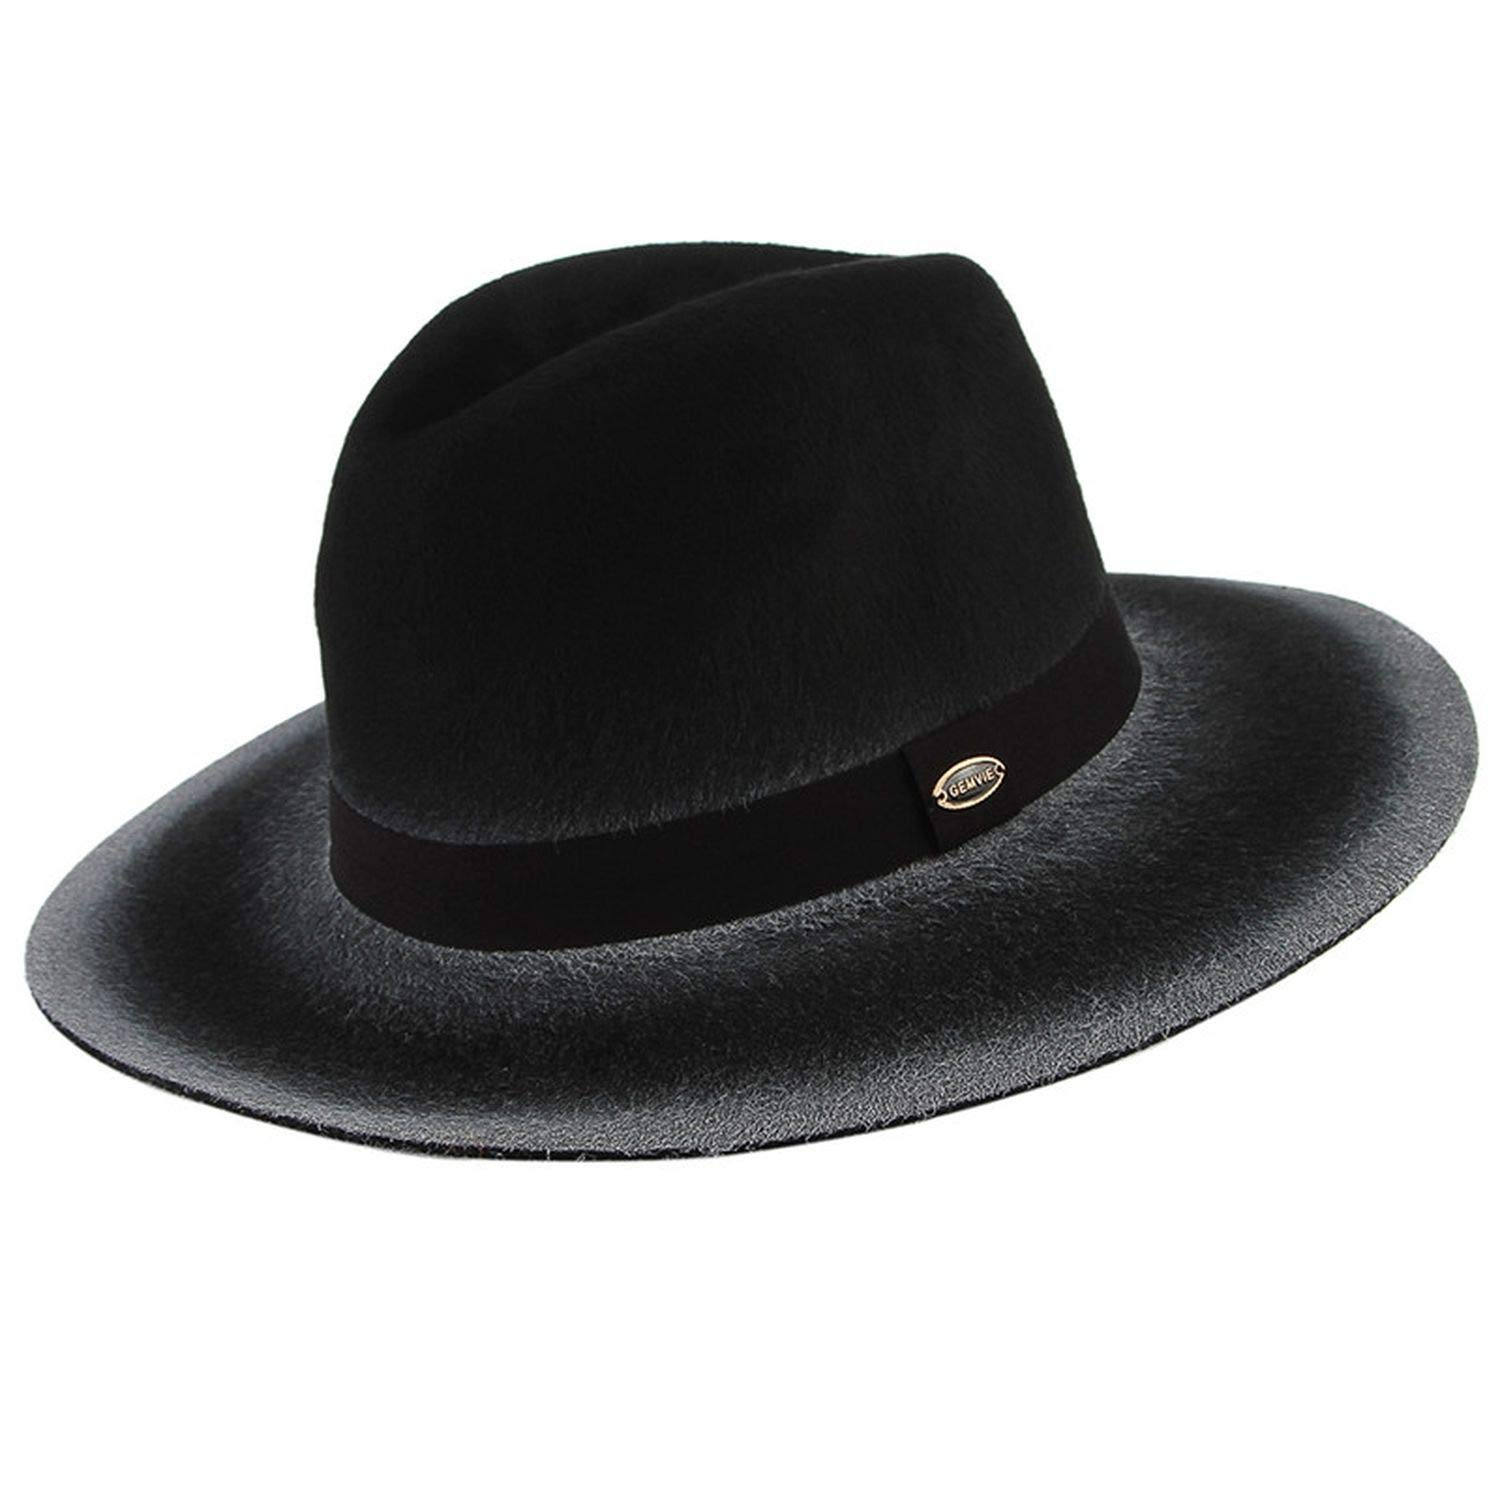 British Style Fedora Hats for Men Male Vintage Retro Classical Gentleman Wide Brim Jazz Top Hat with Ribbon